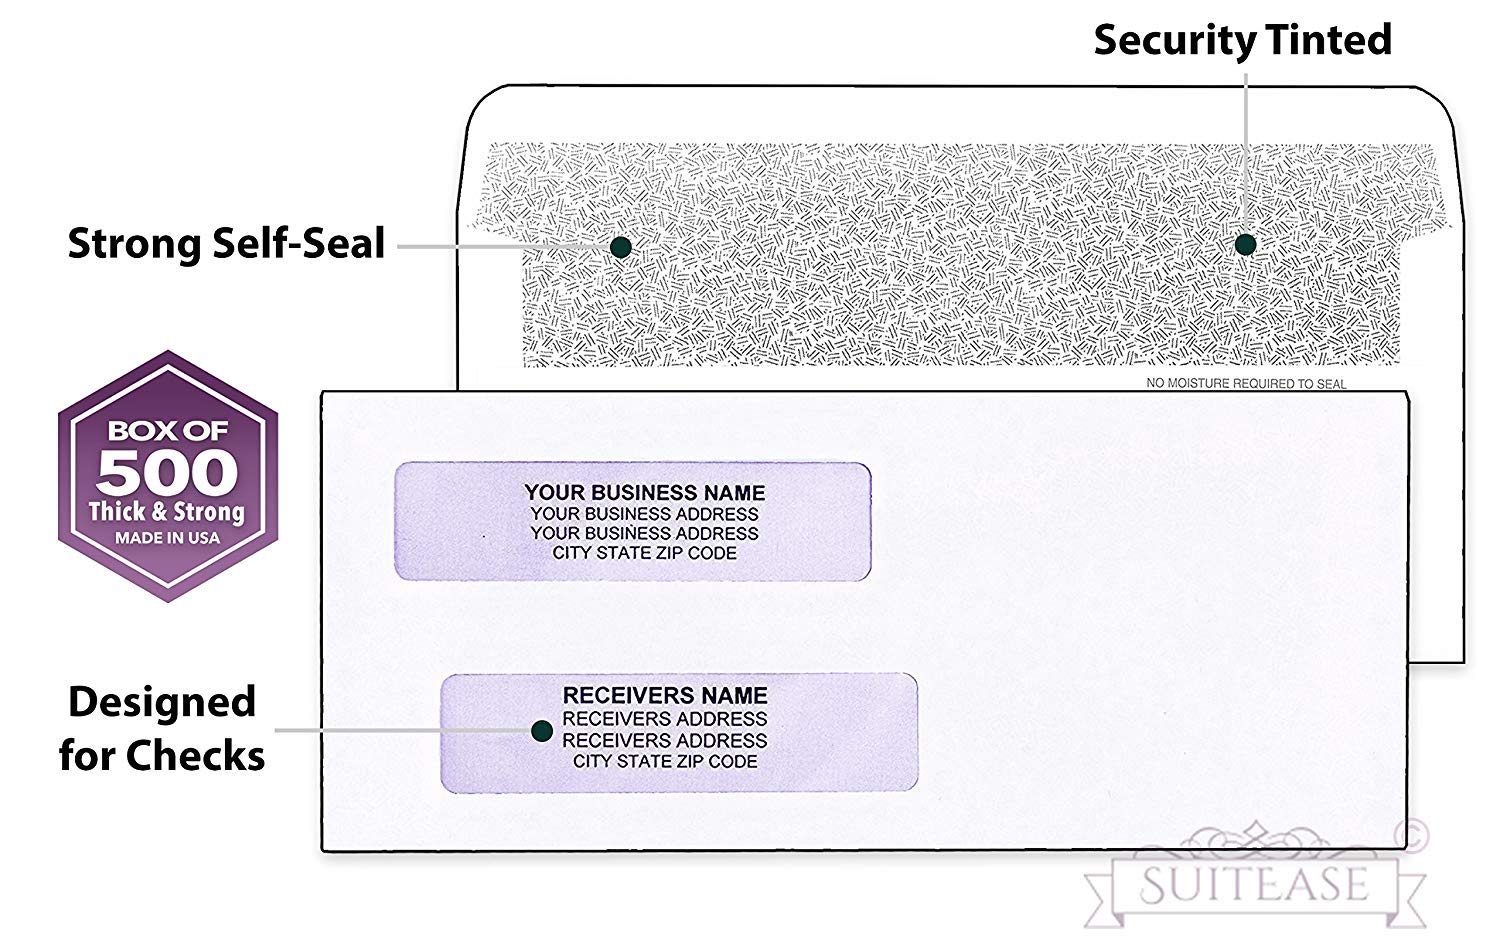 500 #8 Flip and Seal Security Check Envelopes, Double Window For Addresses, Inner Security, Designed for Quick-Books Printed Checks, Perfect Fit Laser Checks - Number 8 Size 3 5/8 Inch x 8 11/16 Inch